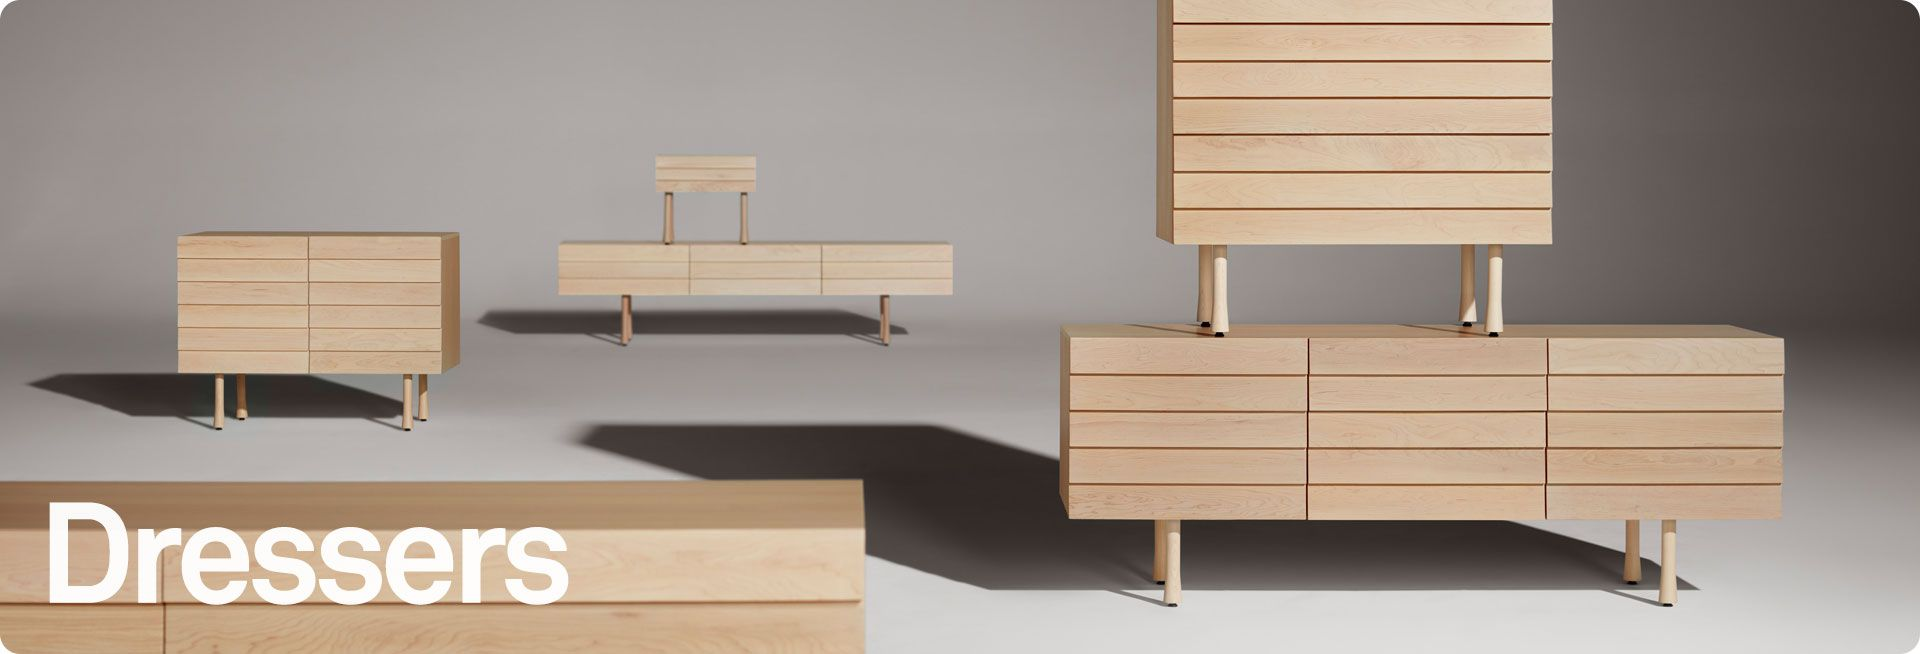 Modern dressers and bedroom storage by blu dot the warehouse